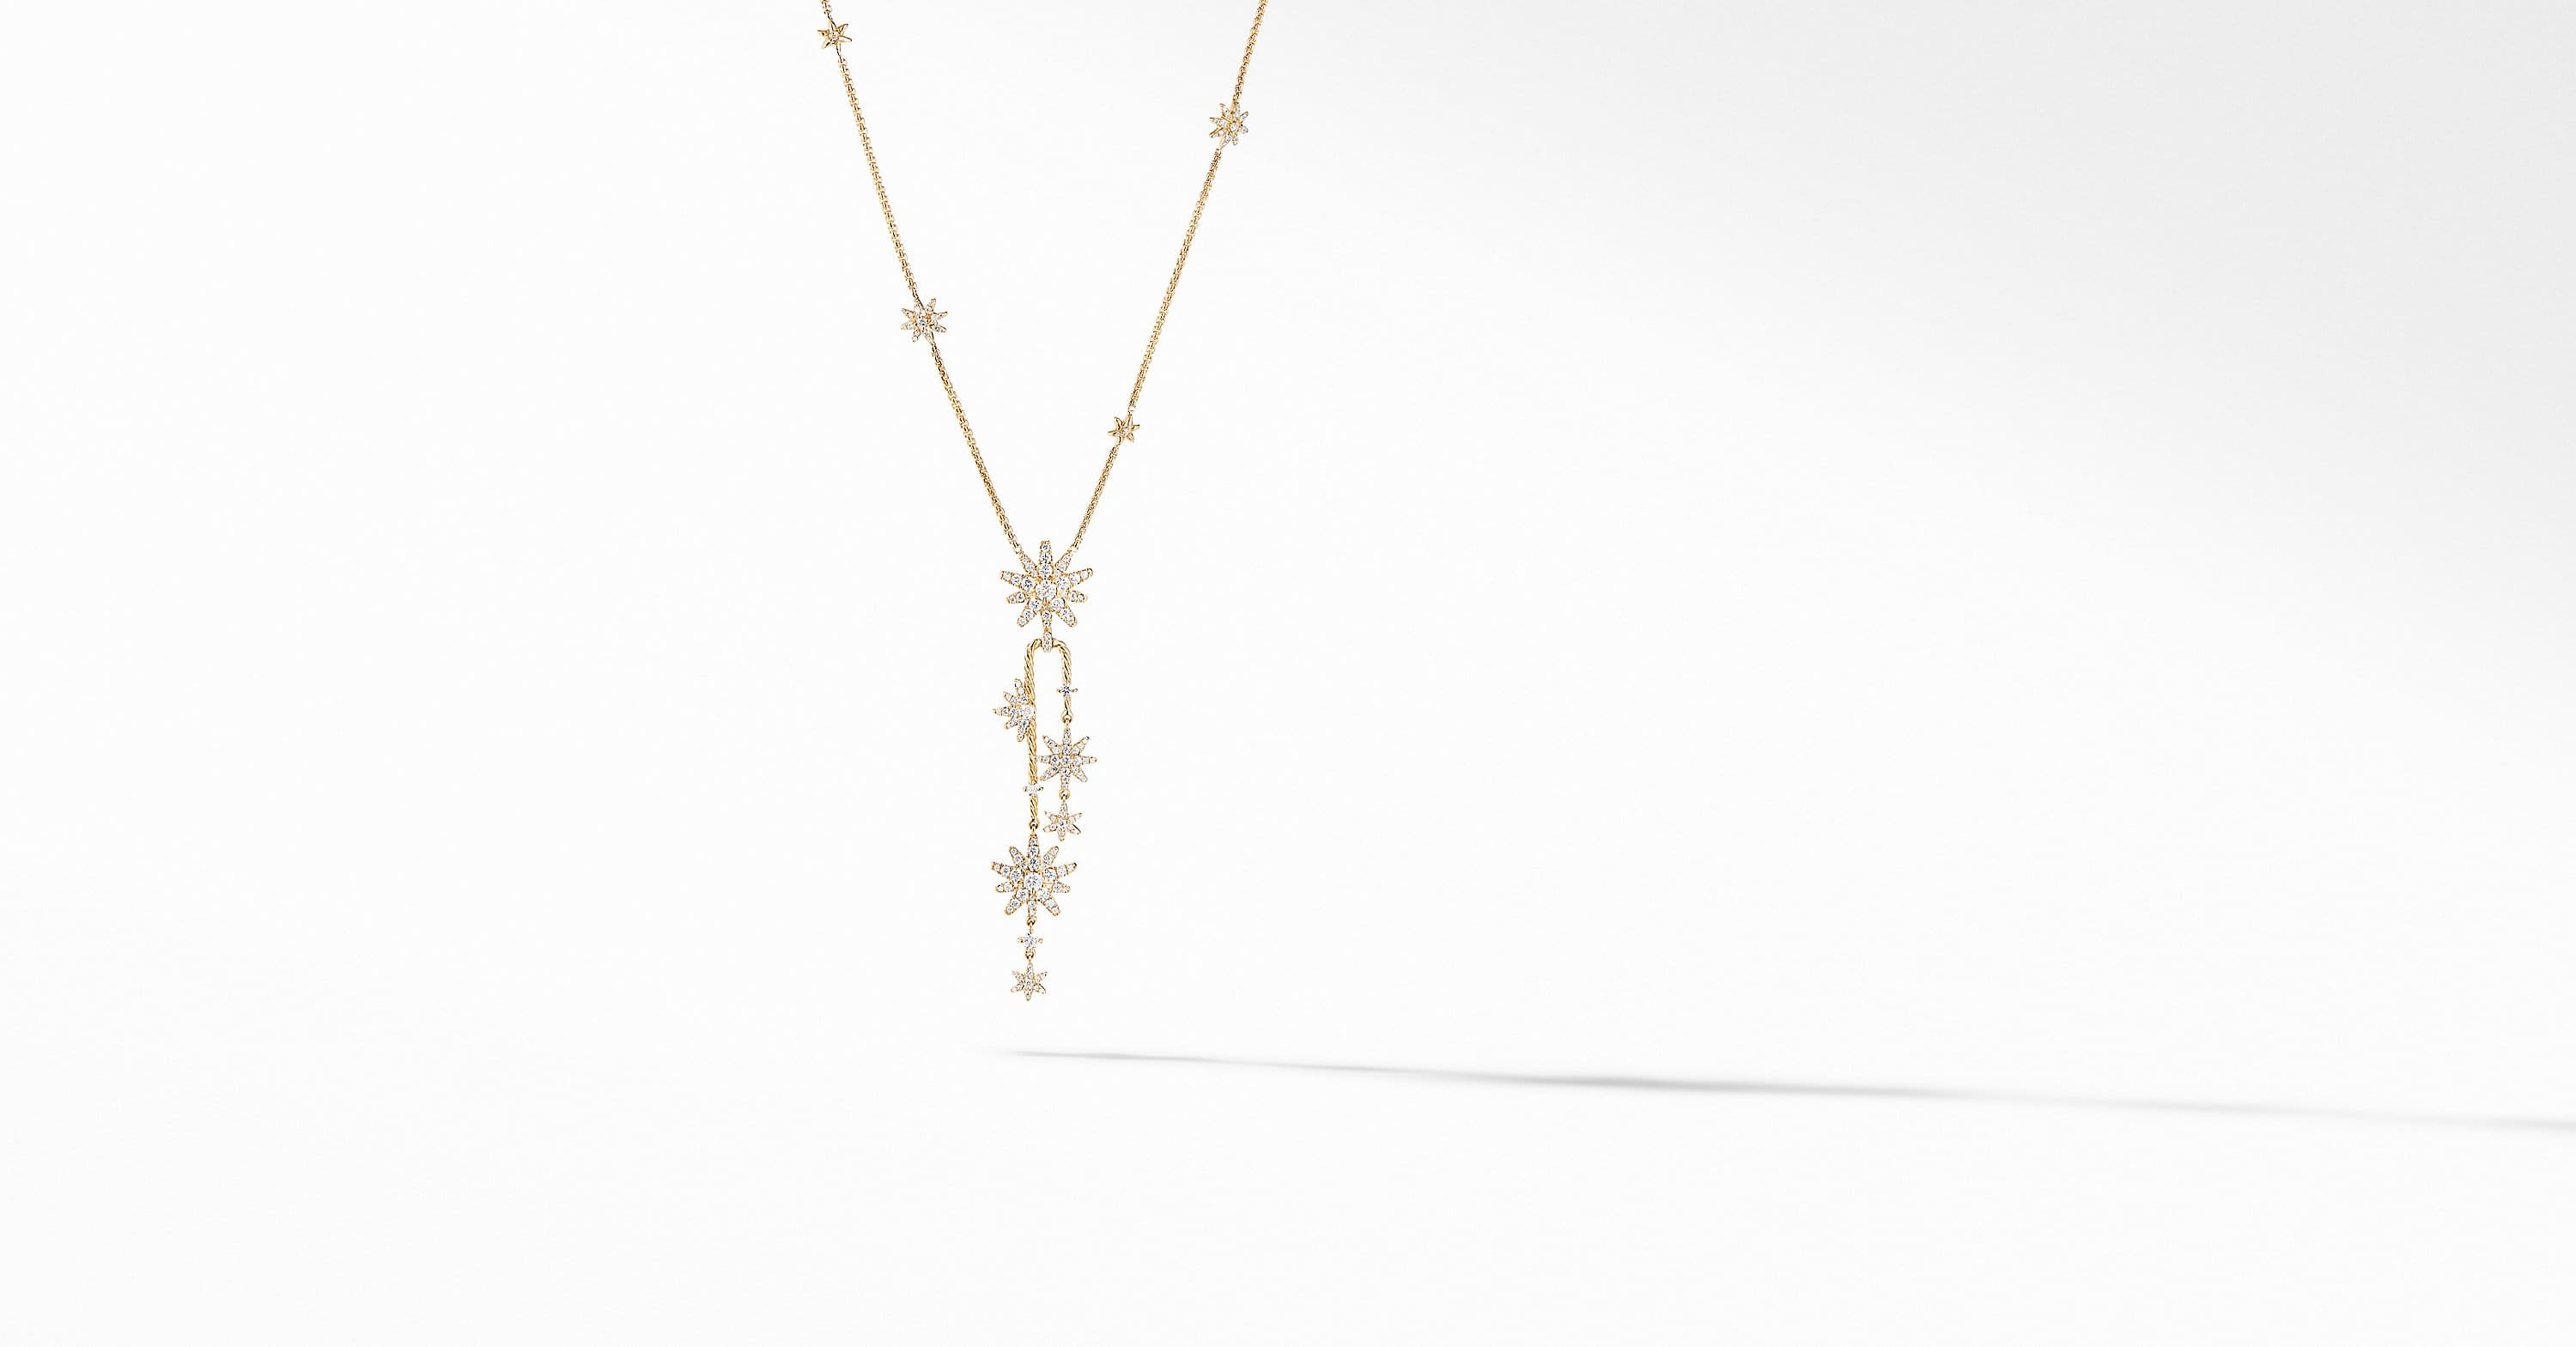 Starburst Cluster Necklace in 18K Yellow Gold with Pavé